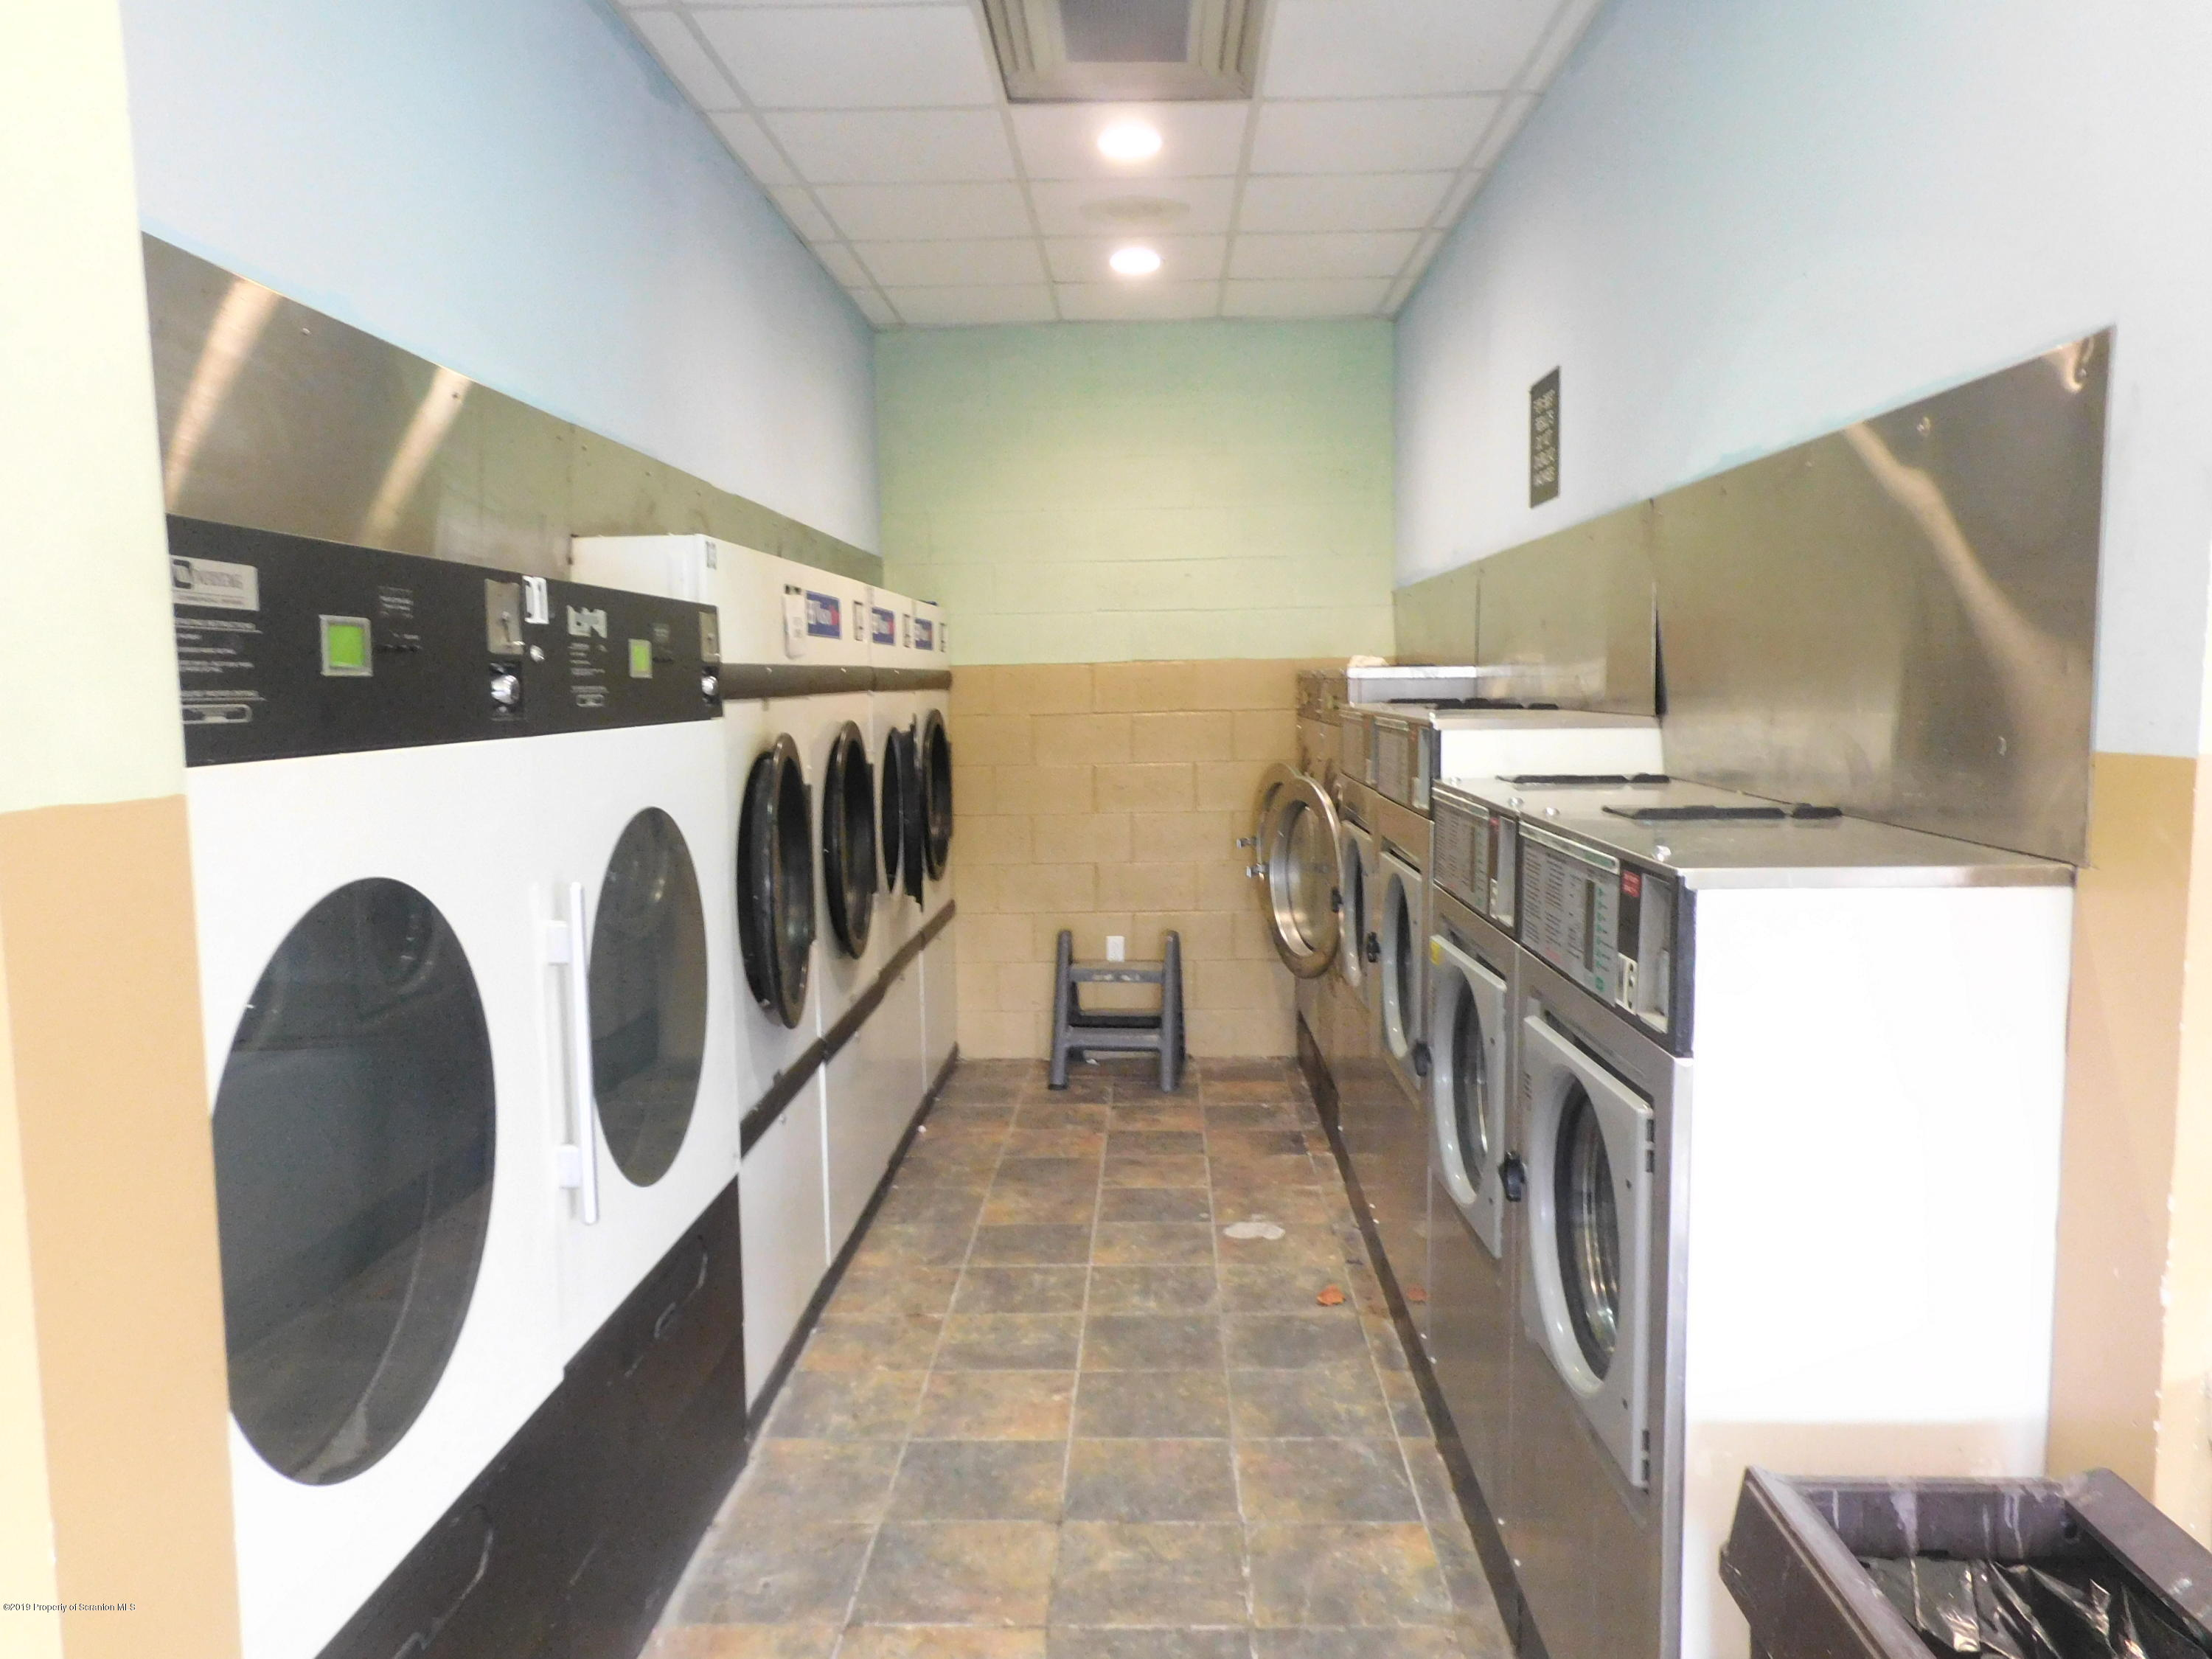 311 Blakely St, Dunmore, Pennsylvania 18512, ,1 BathroomBathrooms,Commercial,For Sale,Blakely,19-1227